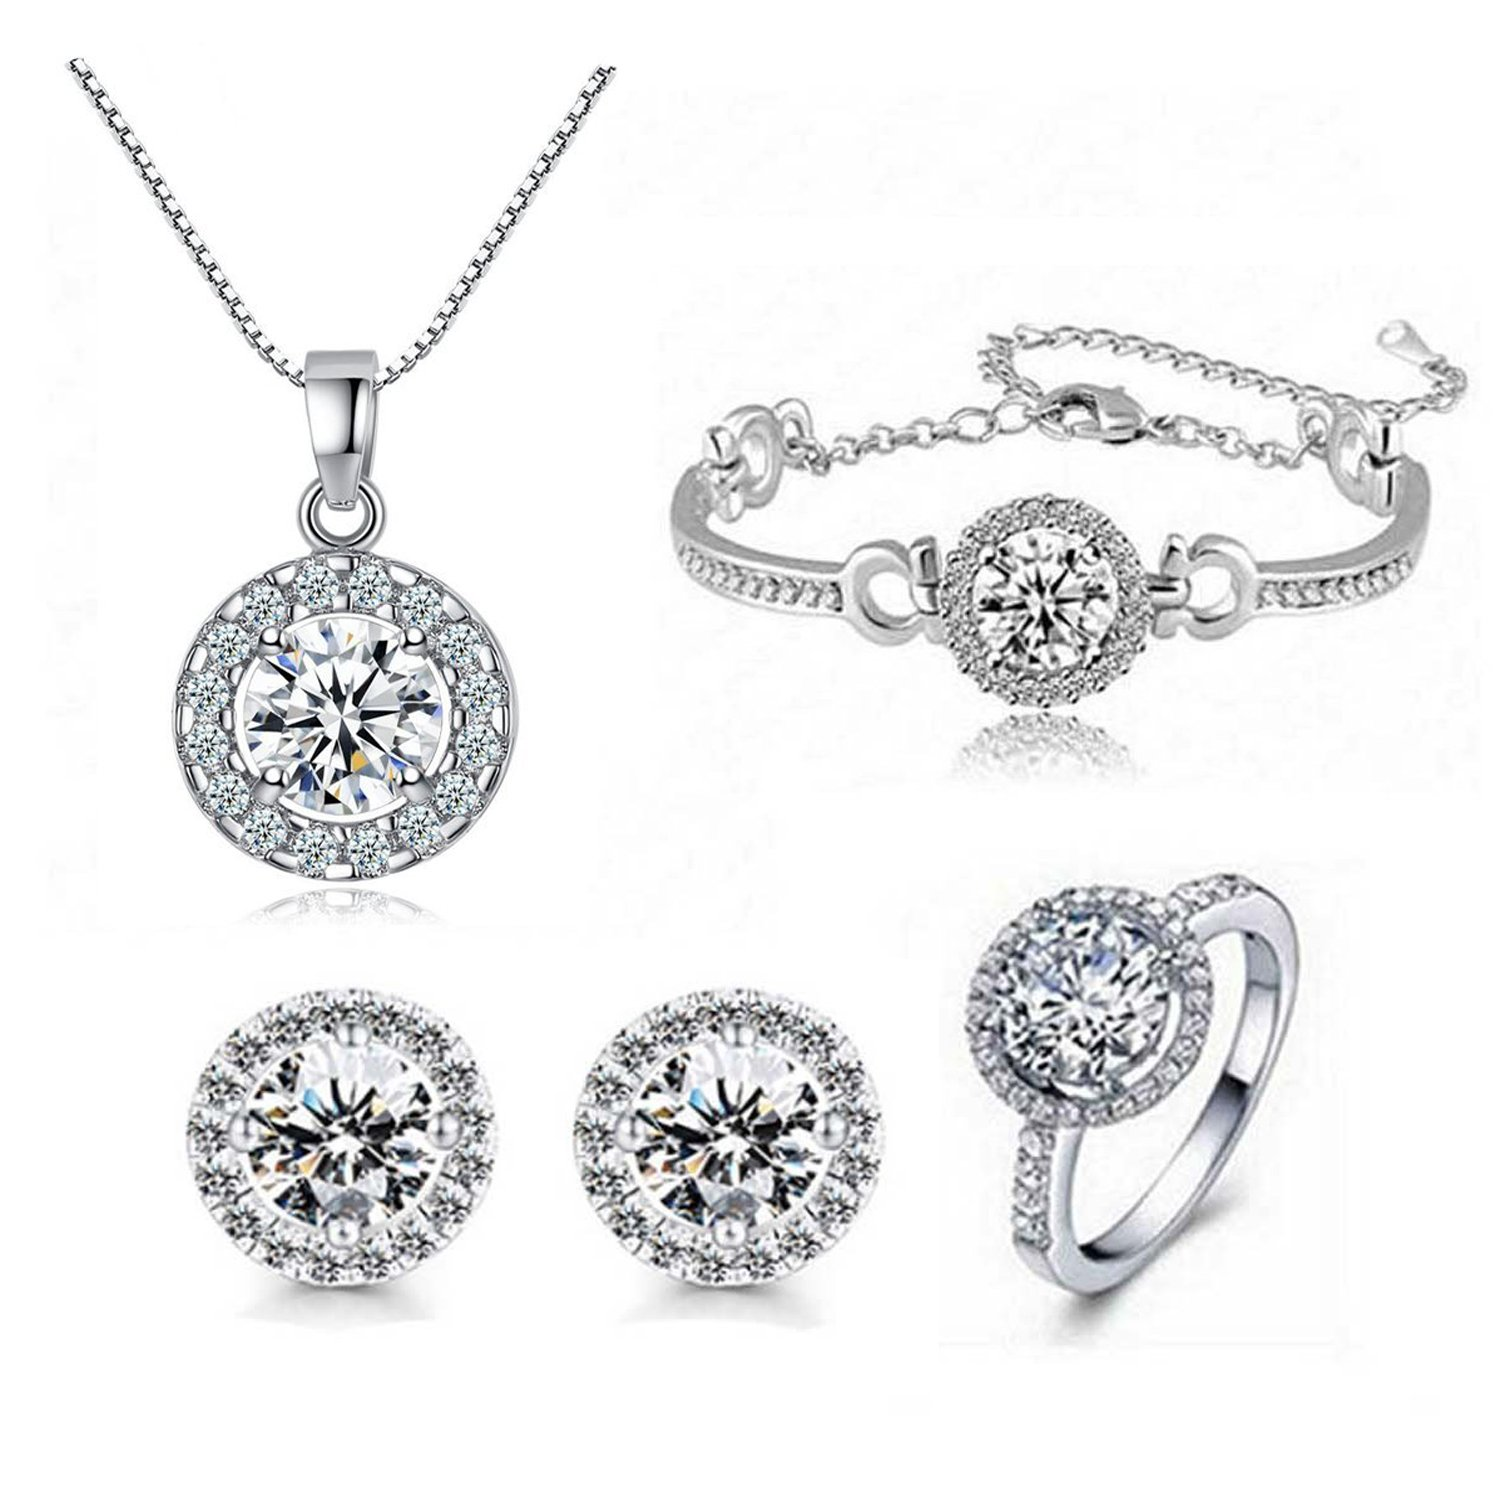 STI-JEWELS Crystal Pendant Necklace Earring Set,Silver Cubic Zirconia Jewelry Sets for Women Girls Prime